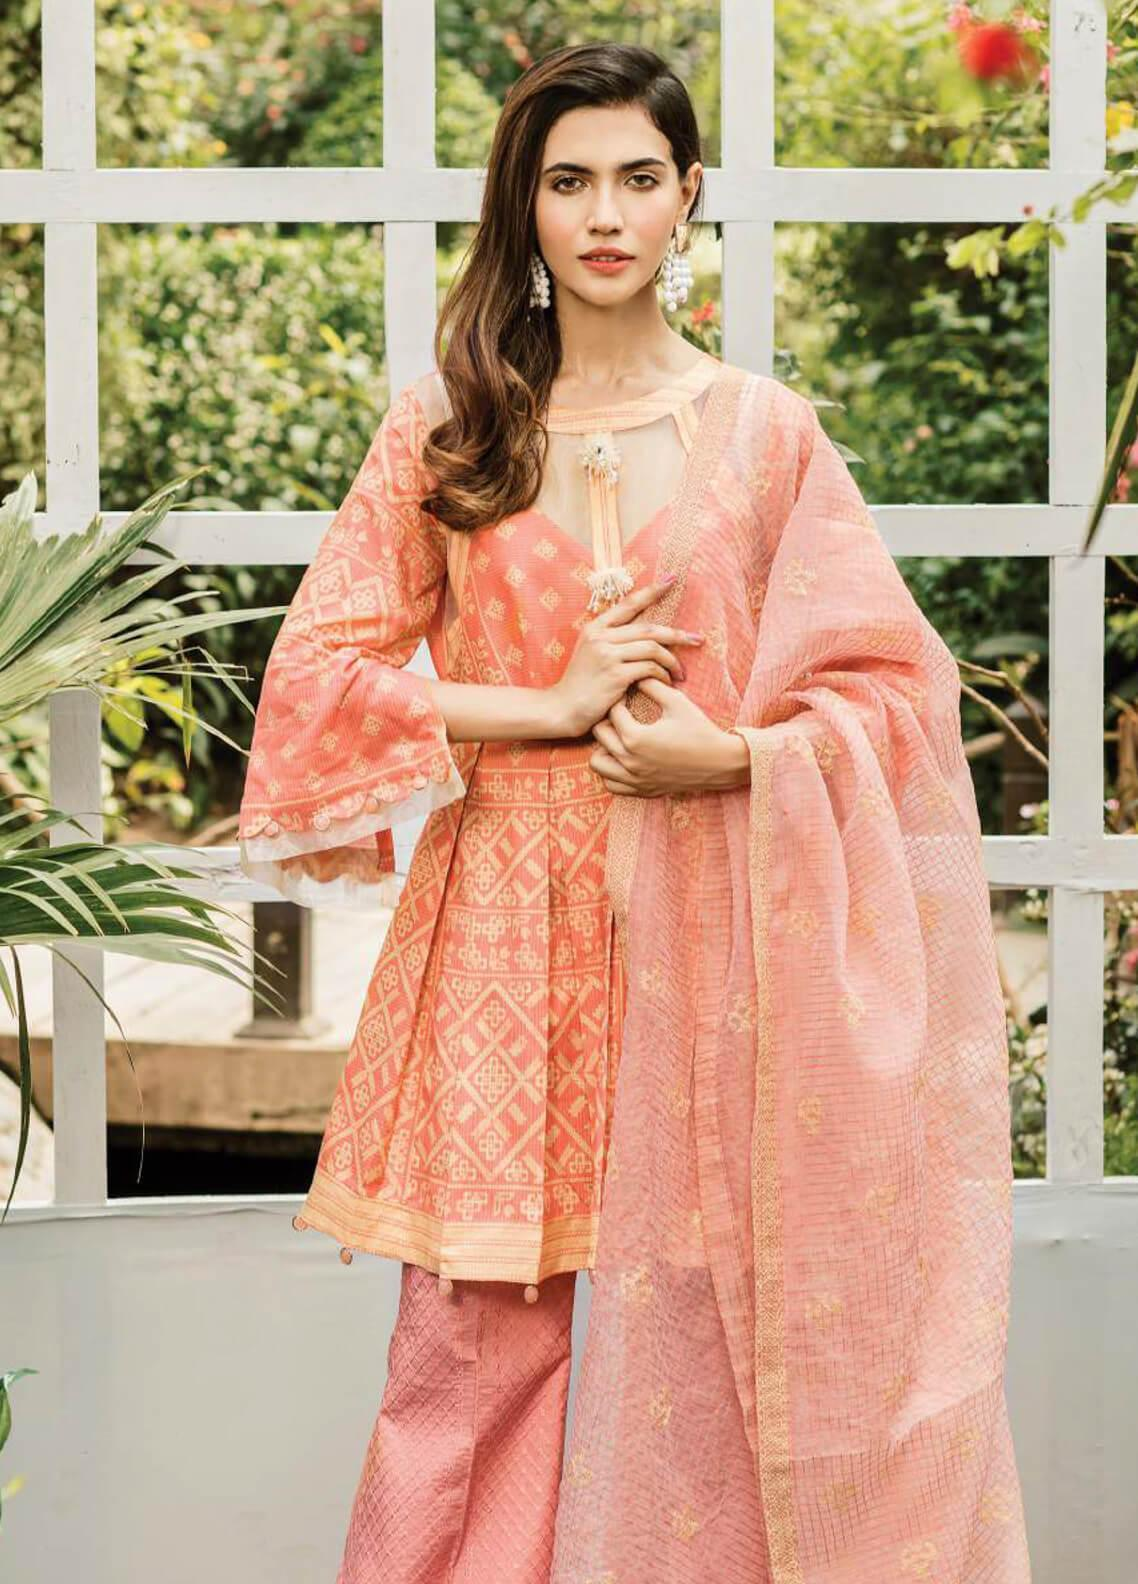 Serene Premium Embroidered Lawn Unstitched 3 Piece Suit SPM19L 02 PEACHY BREEZE - Spring / Summer Collection